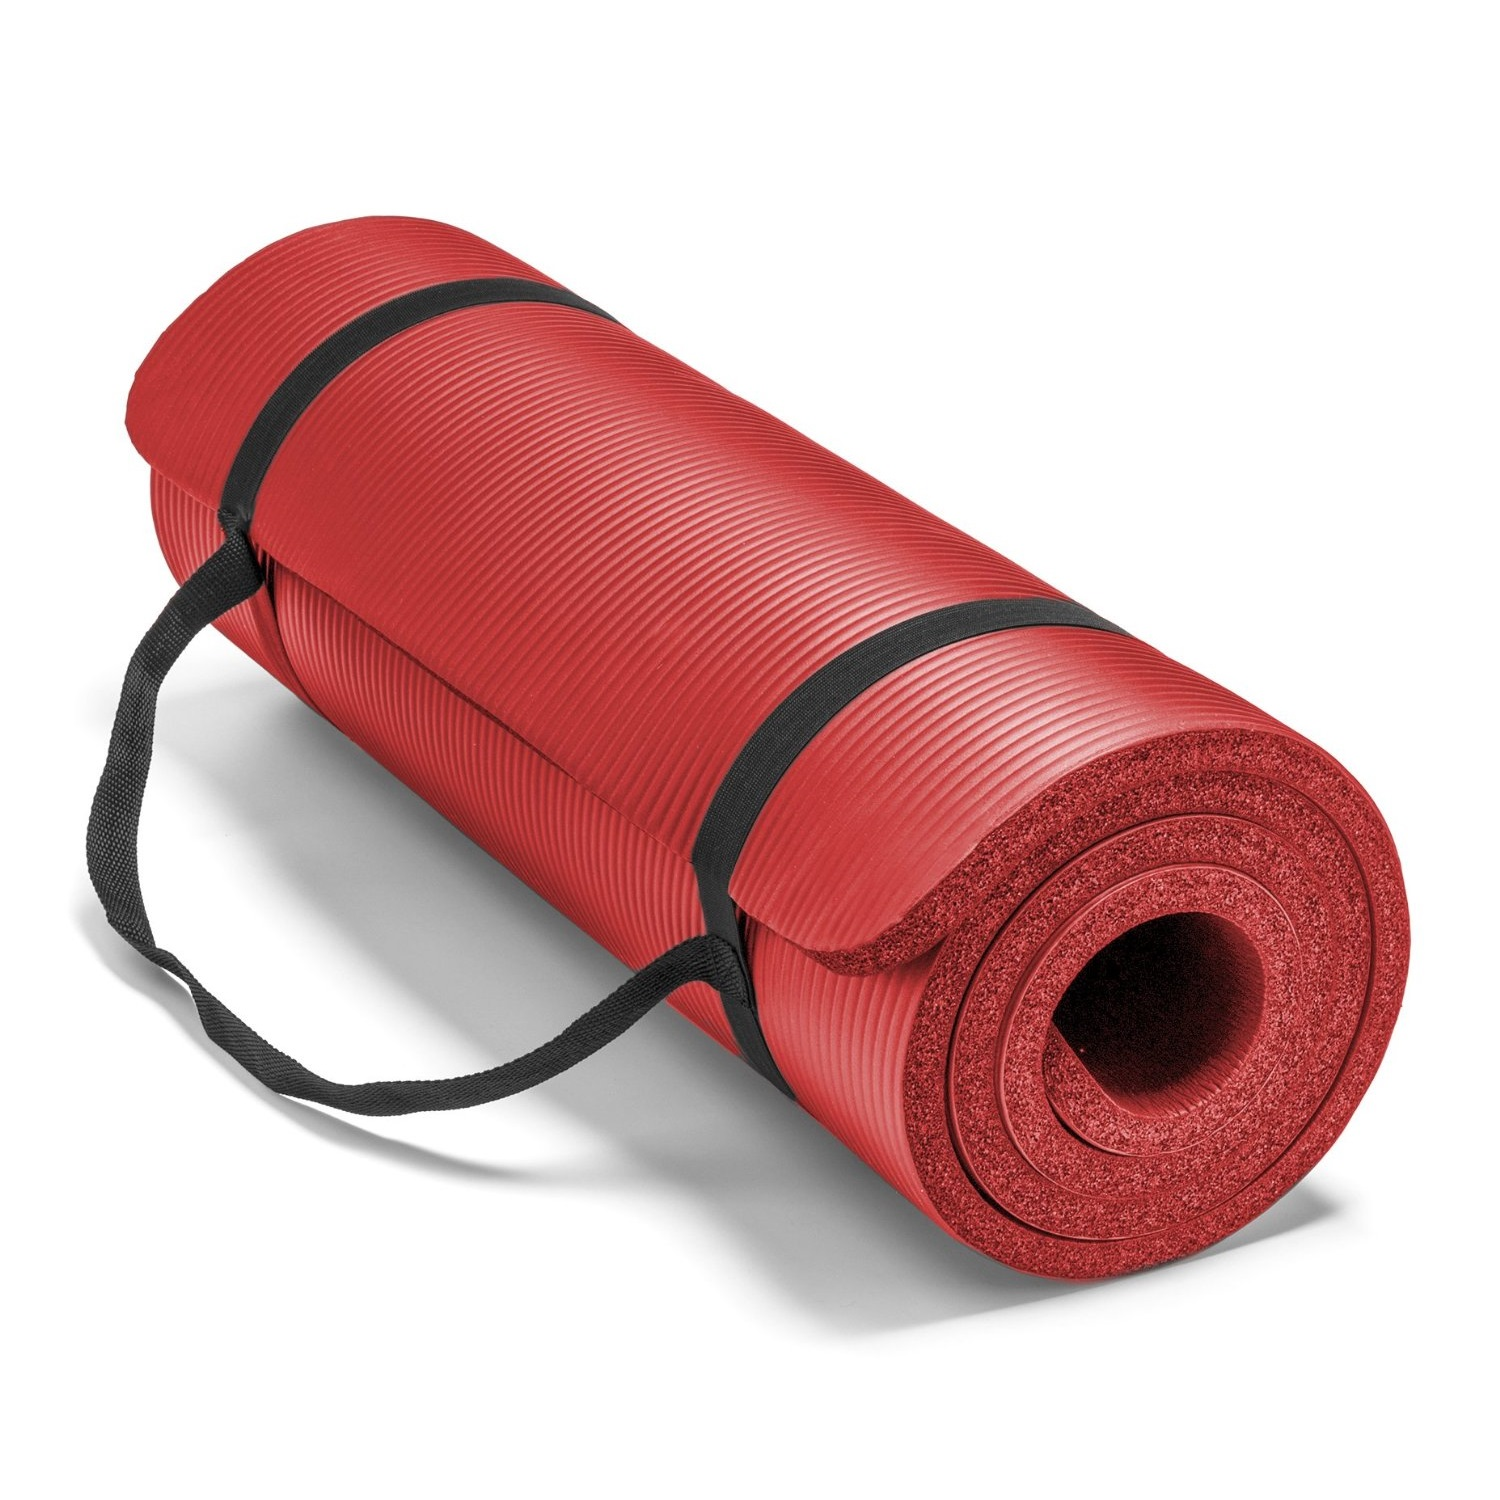 spoga premium 1/2 inch high density yoga mat with carrying strap red